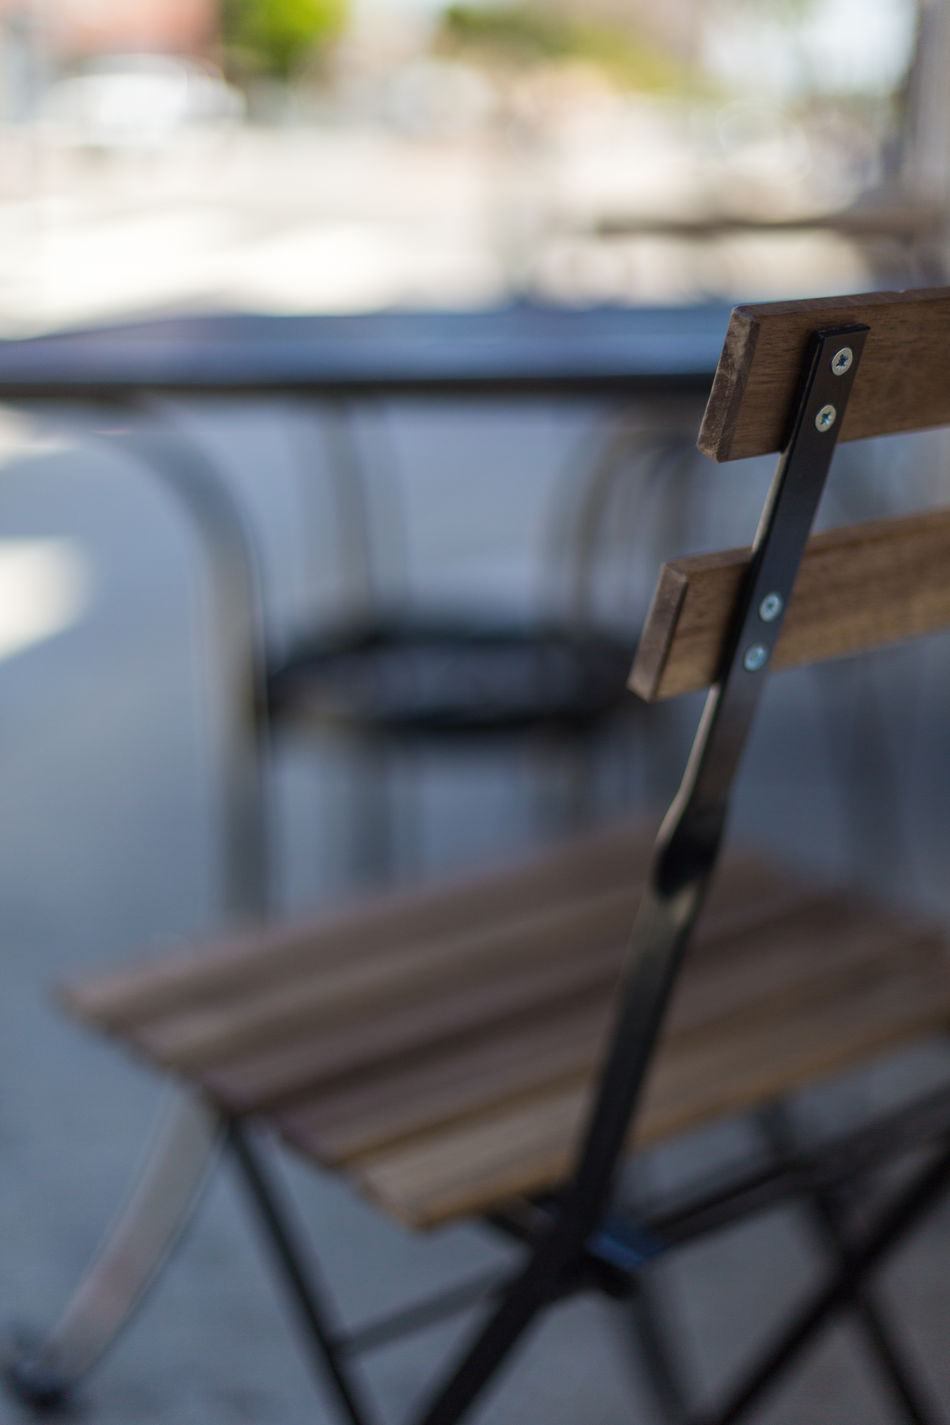 cafe tables and chairs Architecture Building Building Exterior Cafe Cafe Entrance Chairs City Close-up Day Door Focus On Foreground Metal Tables Morning No People Outdoors Patio Roads Shade Shaded Shallow Depth Of Field Street Tables Town Urban Windows